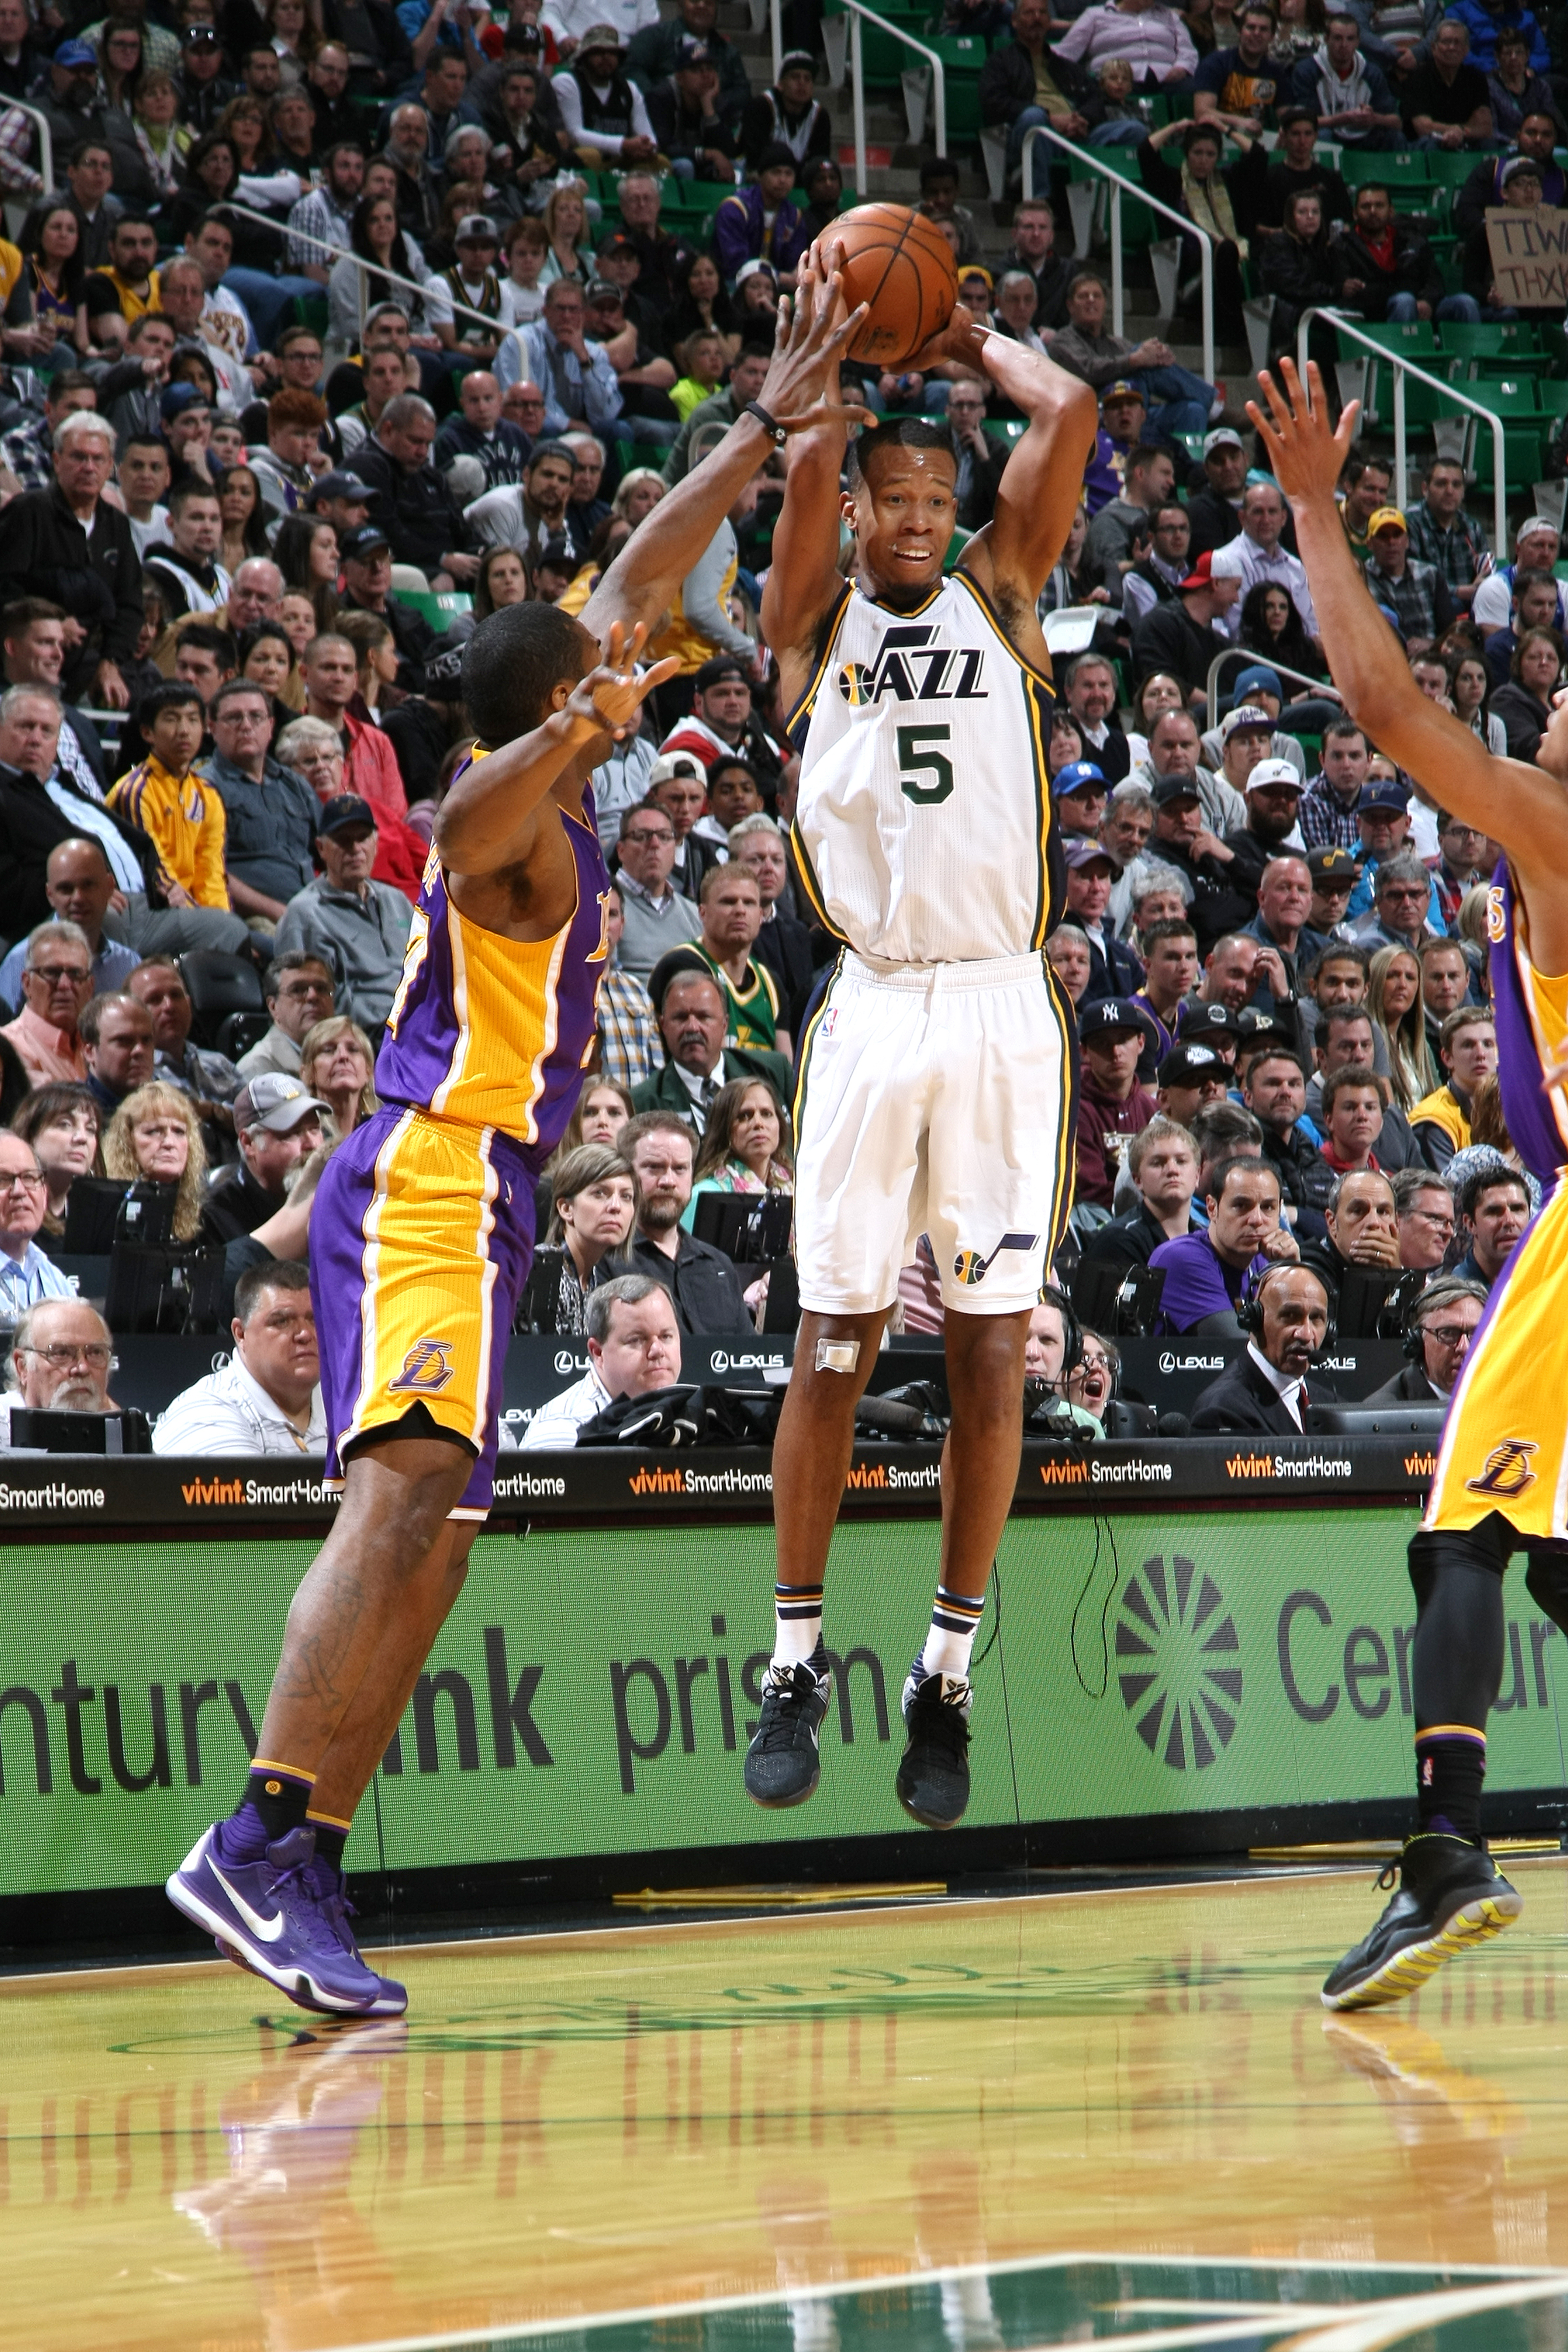 SALT LAKE CITY, UT - MARCH 28: Rodney Hood #5 of the Utah Jazz shoots the ball during the game against the Los Angeles Lakers on March 28, 2016 at EnergySolutions Arena in Salt Lake City, Utah. (Photo by Melissa Majchrzak/NBAE via Getty Images)